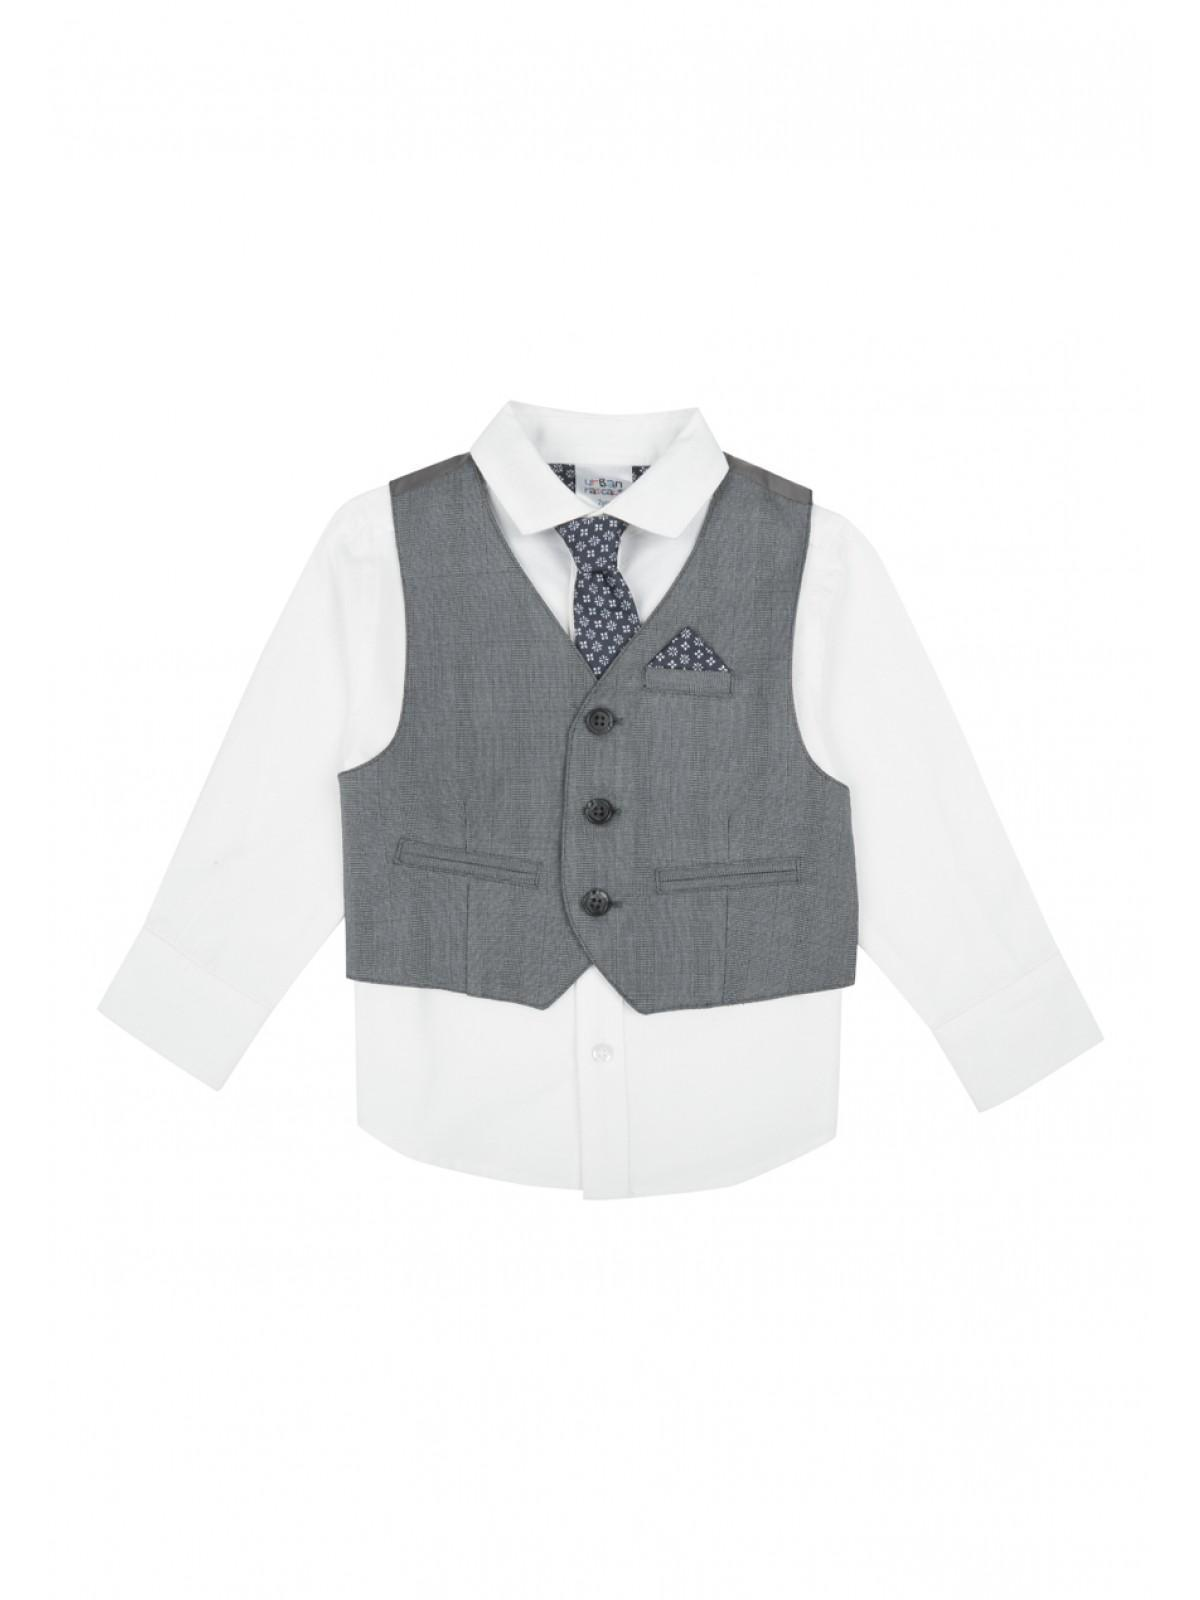 a2157cf7d9b62a Home; Younger Boys Long Sleeved Shirt, Tie & Waistcoat Set. Back.  PreviousNext